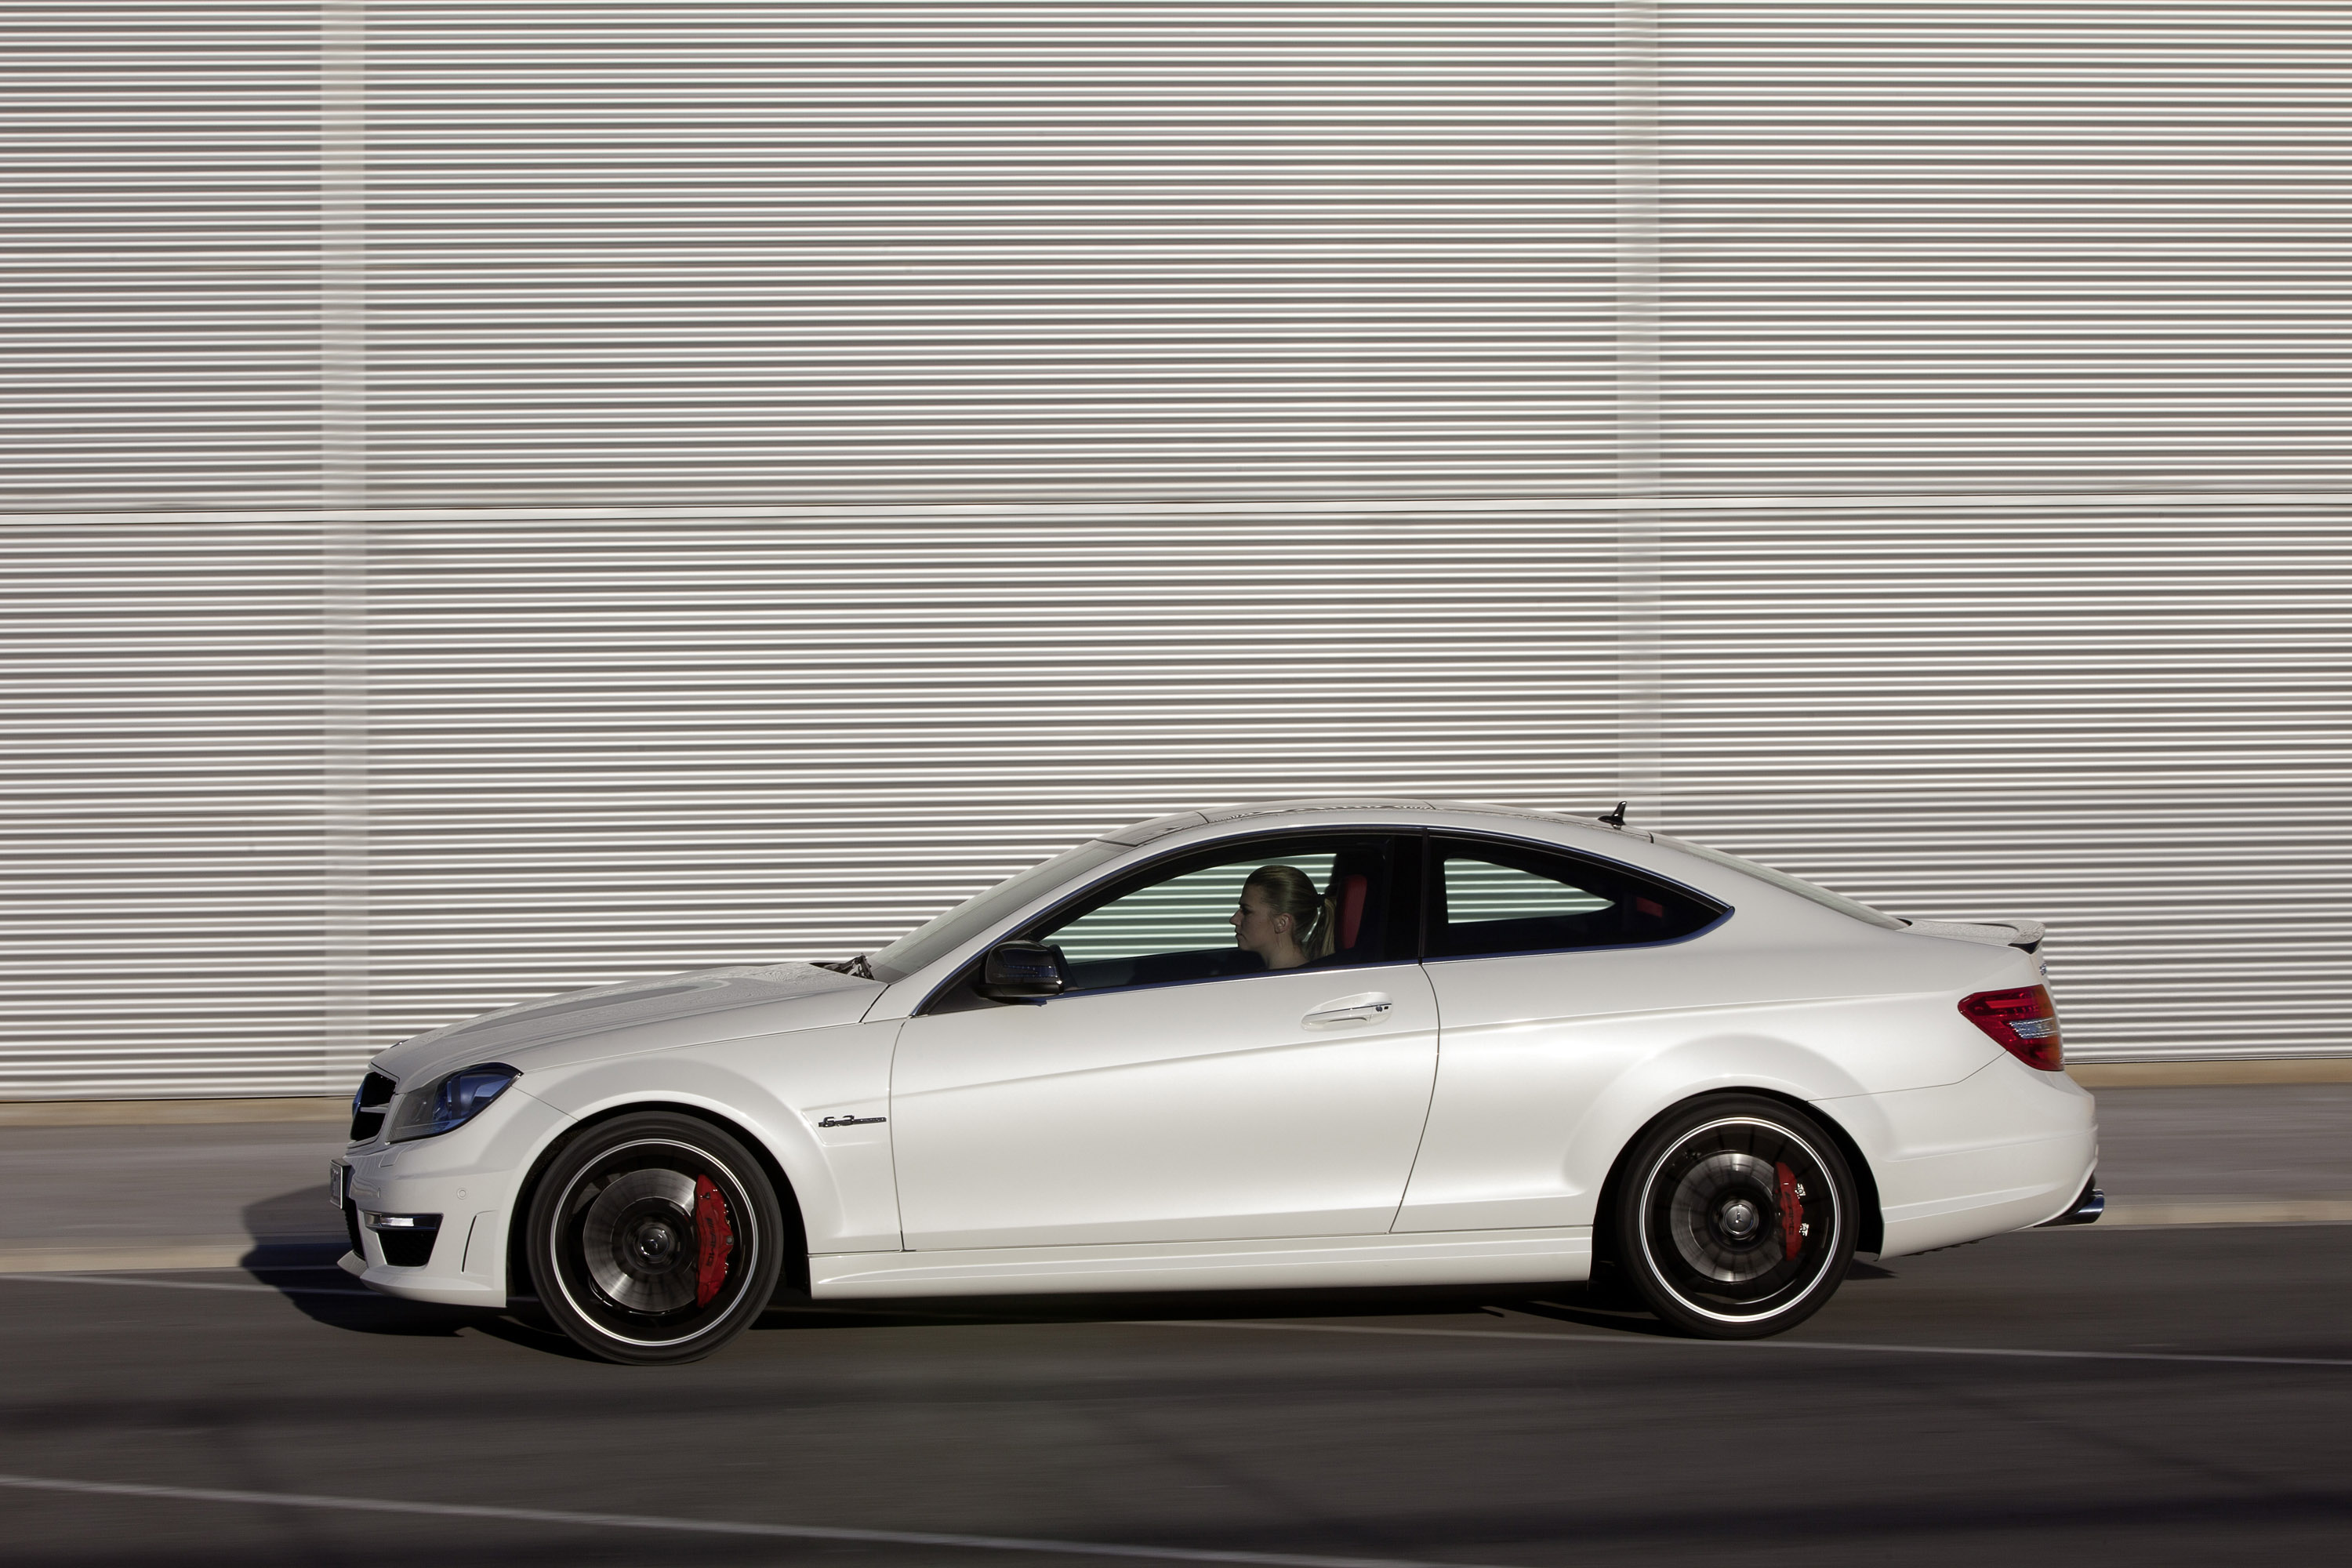 2012 mercedes c63 amg coupe figure eight drift - 2012 mercedes c63 amg coupe ...